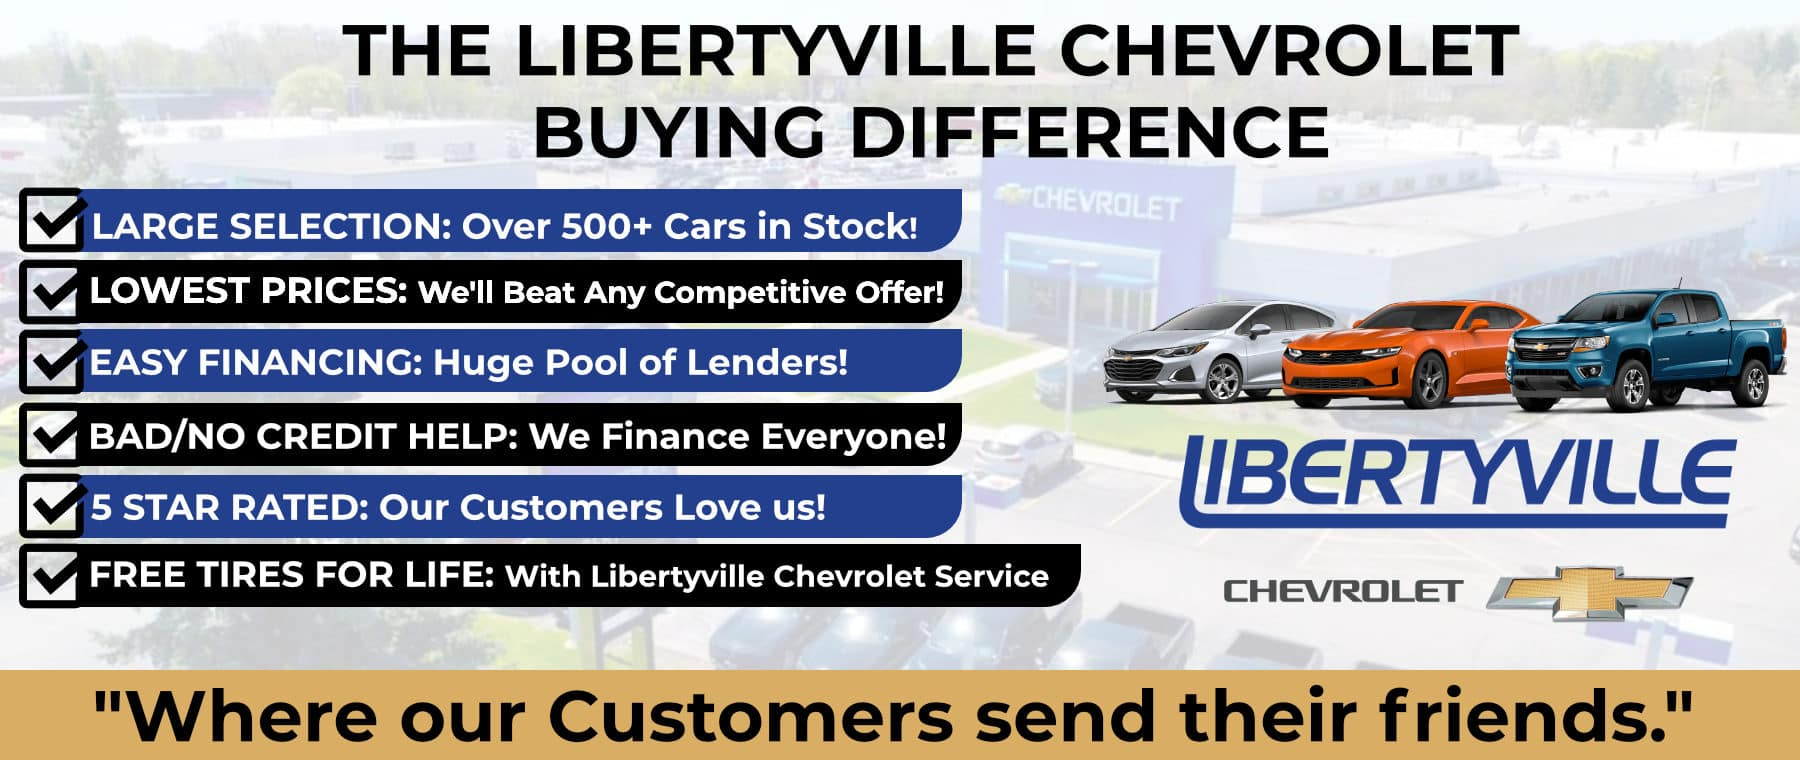 October_2021 Buying Difference Libertyville Chevrolet